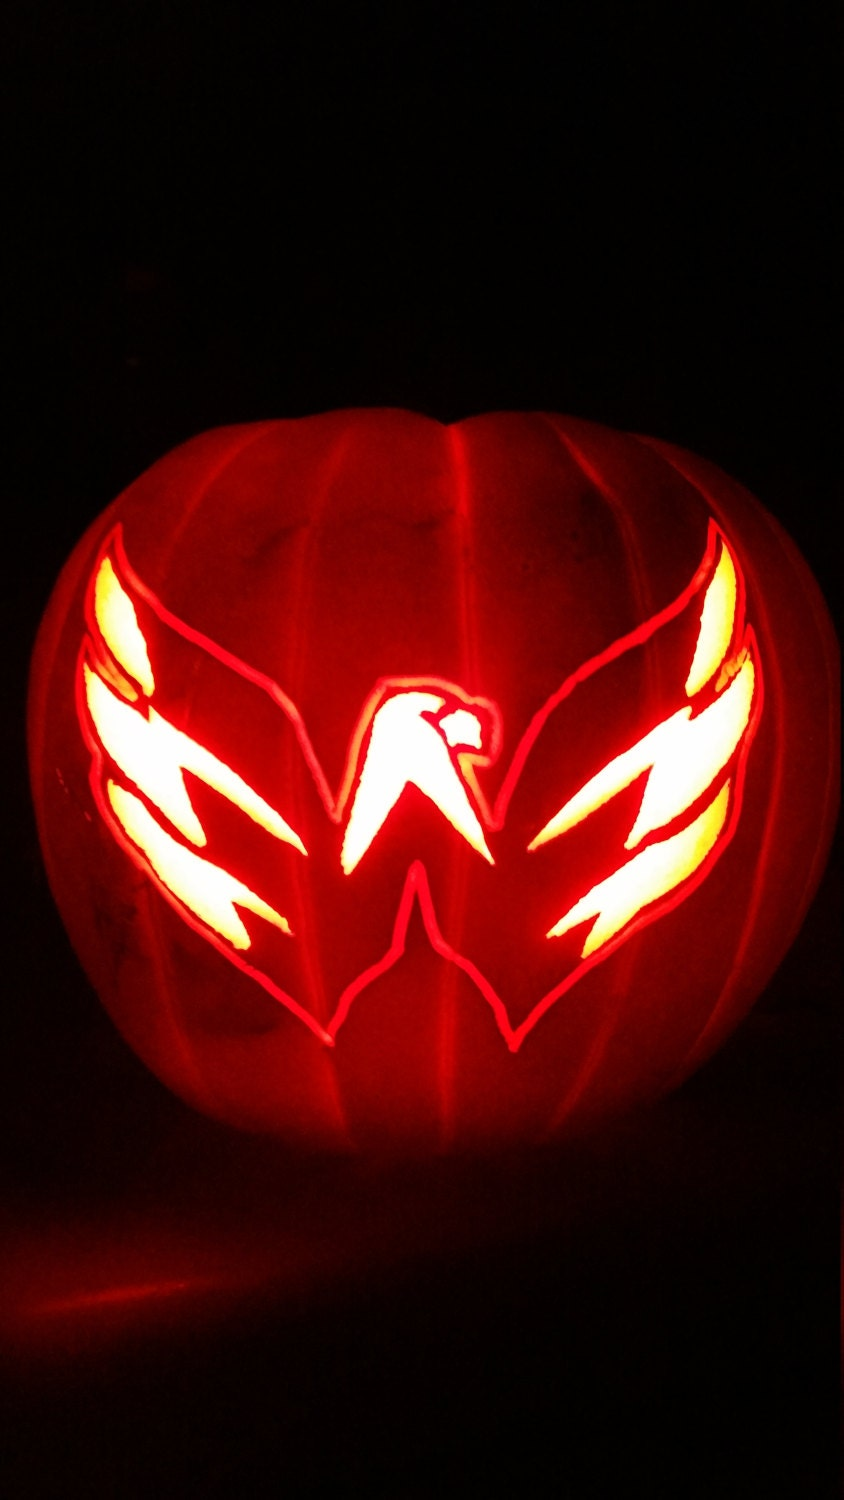 Nhl washington capitals logo hand carved fake pumpkin